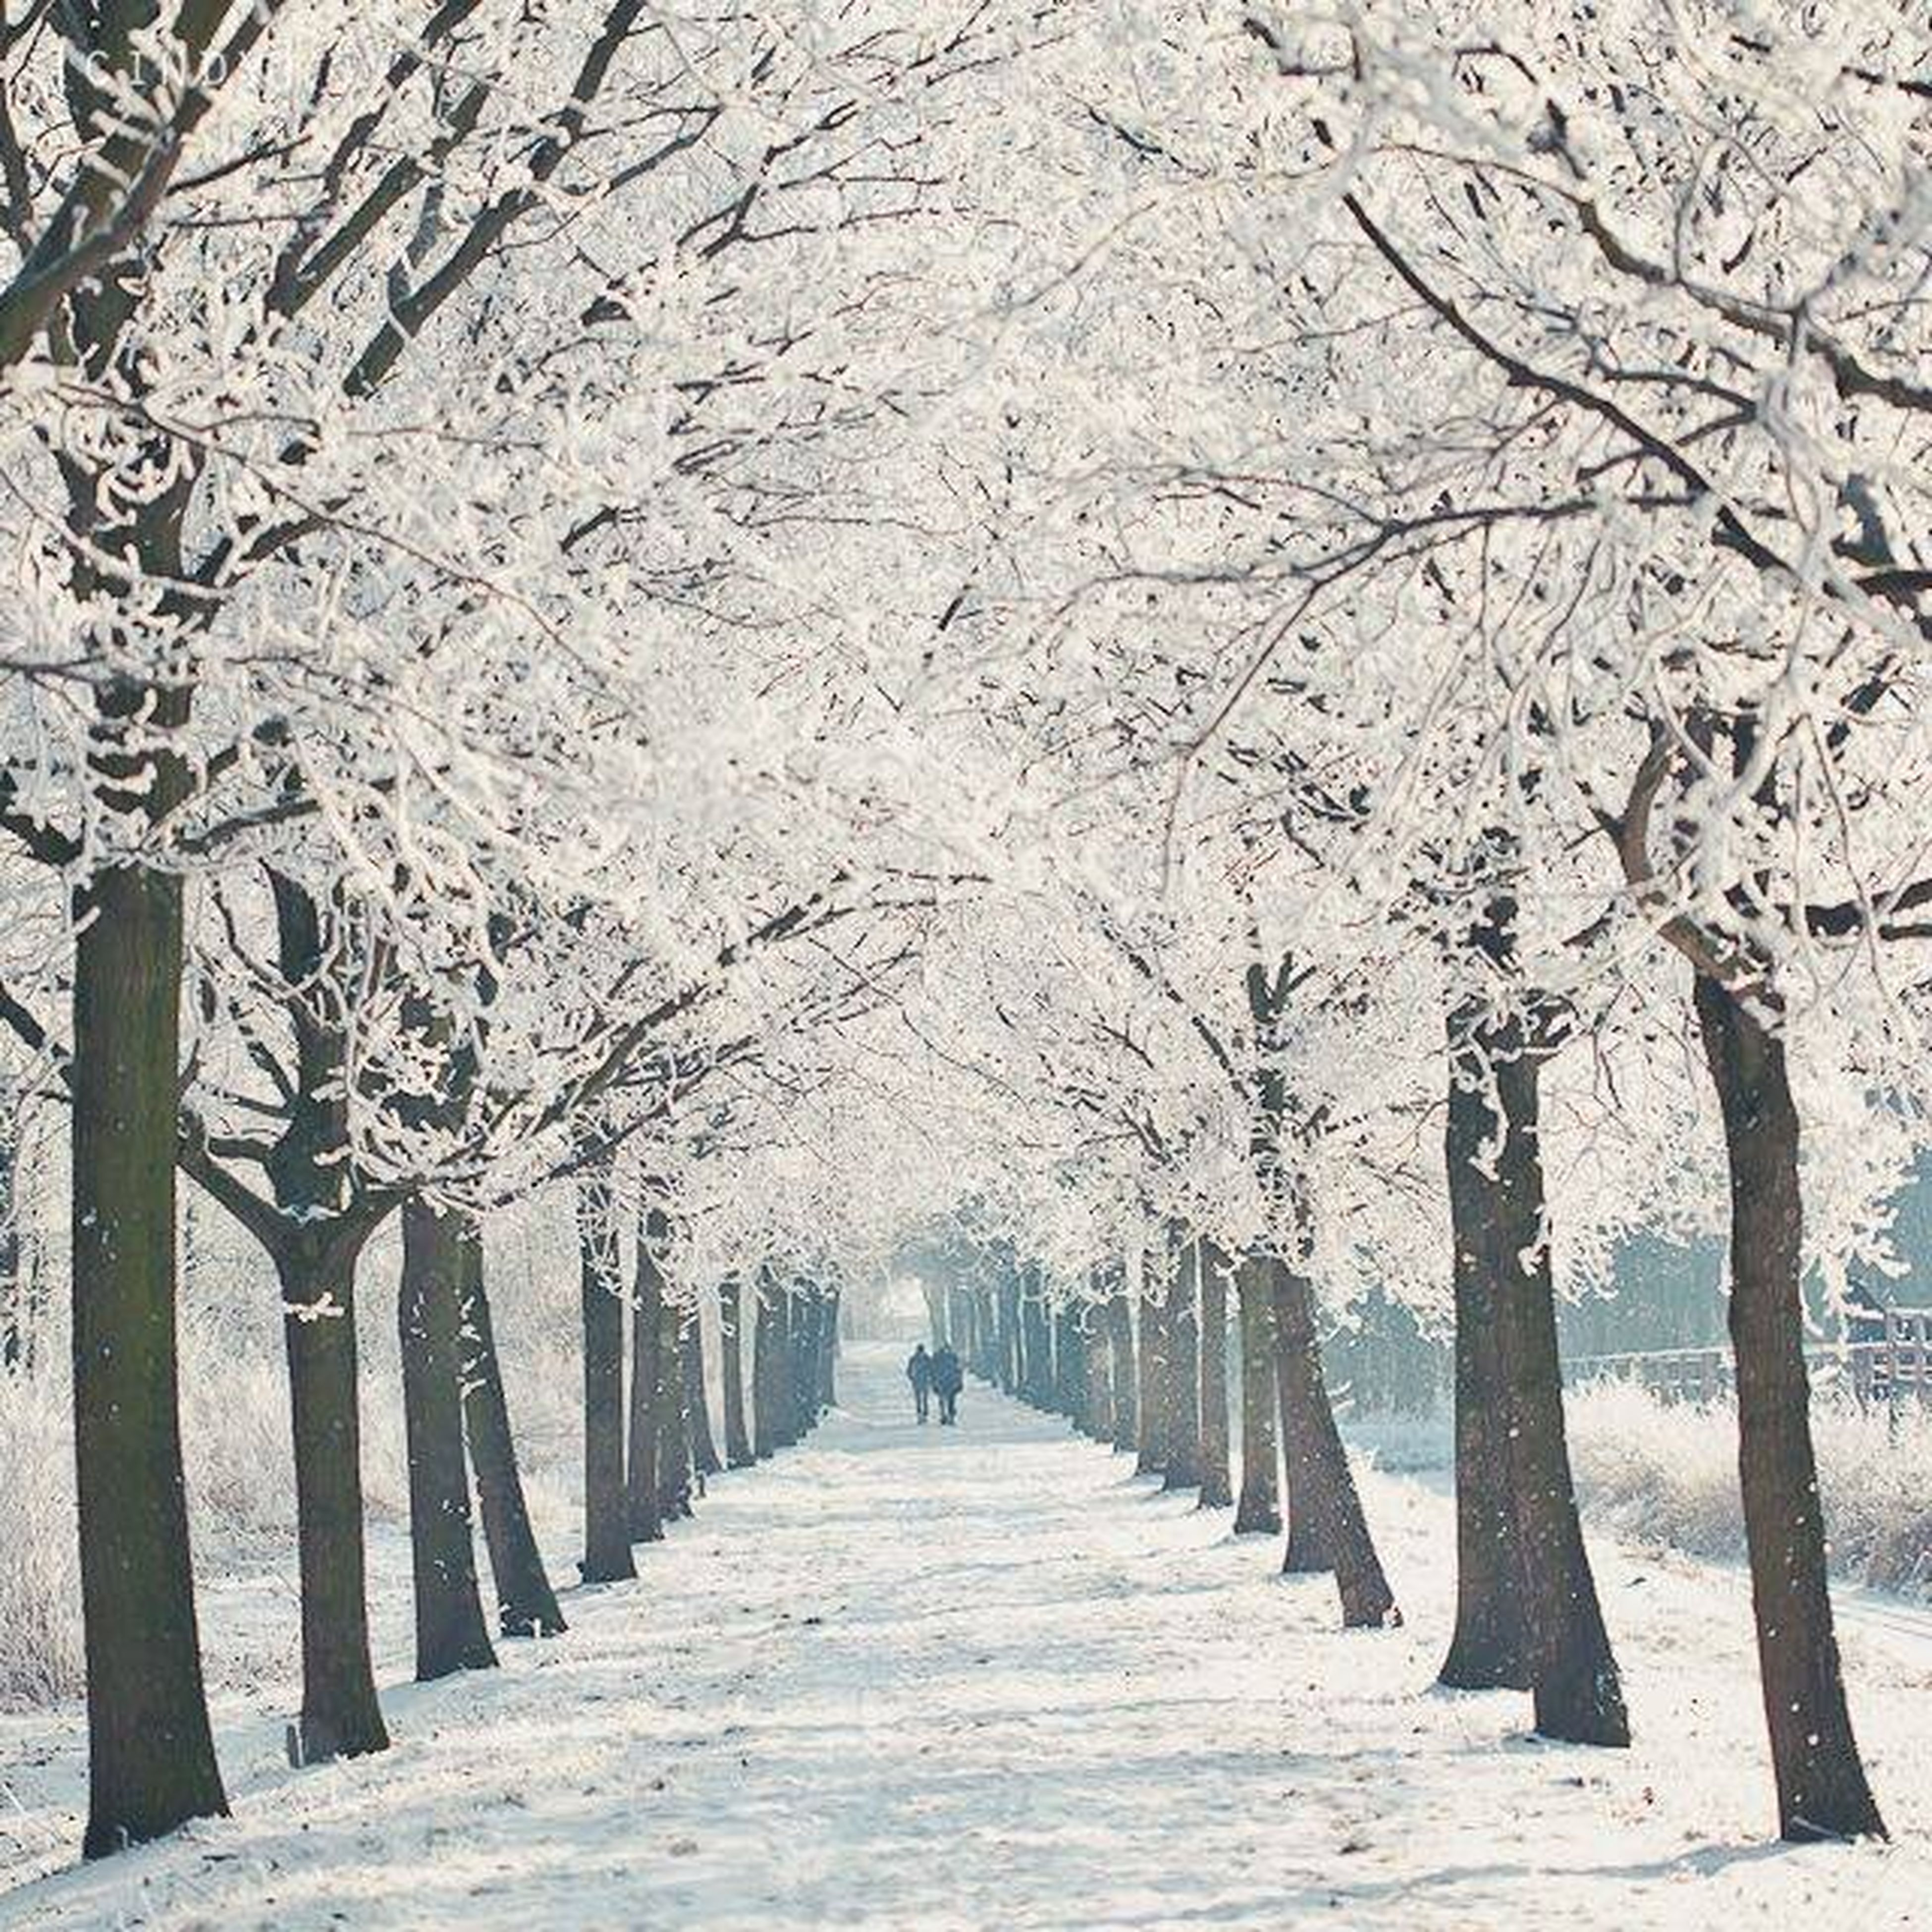 The summer is definitely over now ? Now wishing for a white winter ❄️⛄️